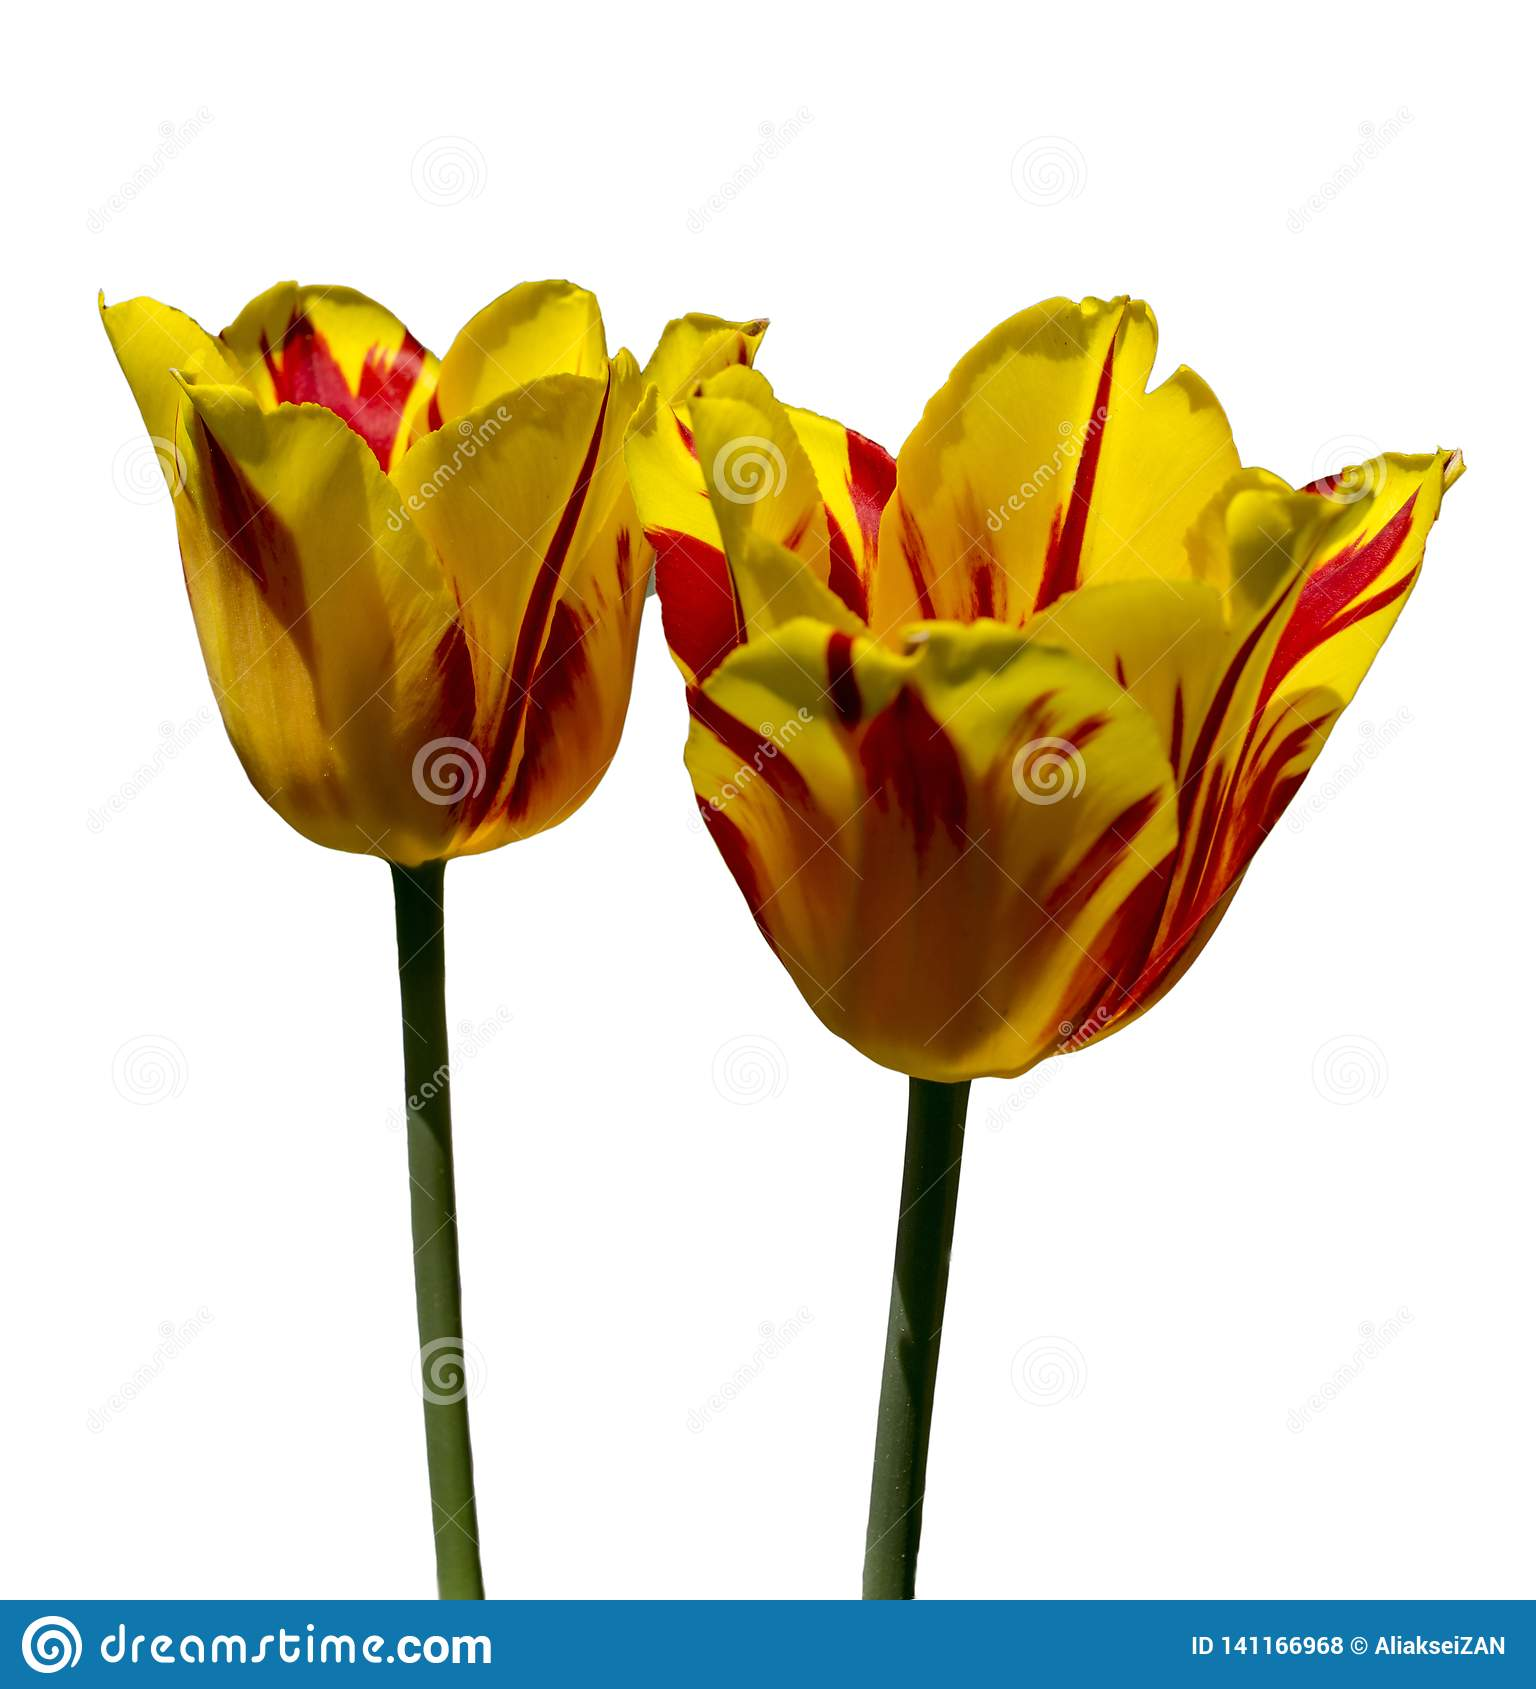 Yellow red tulips on a white background. Isolated